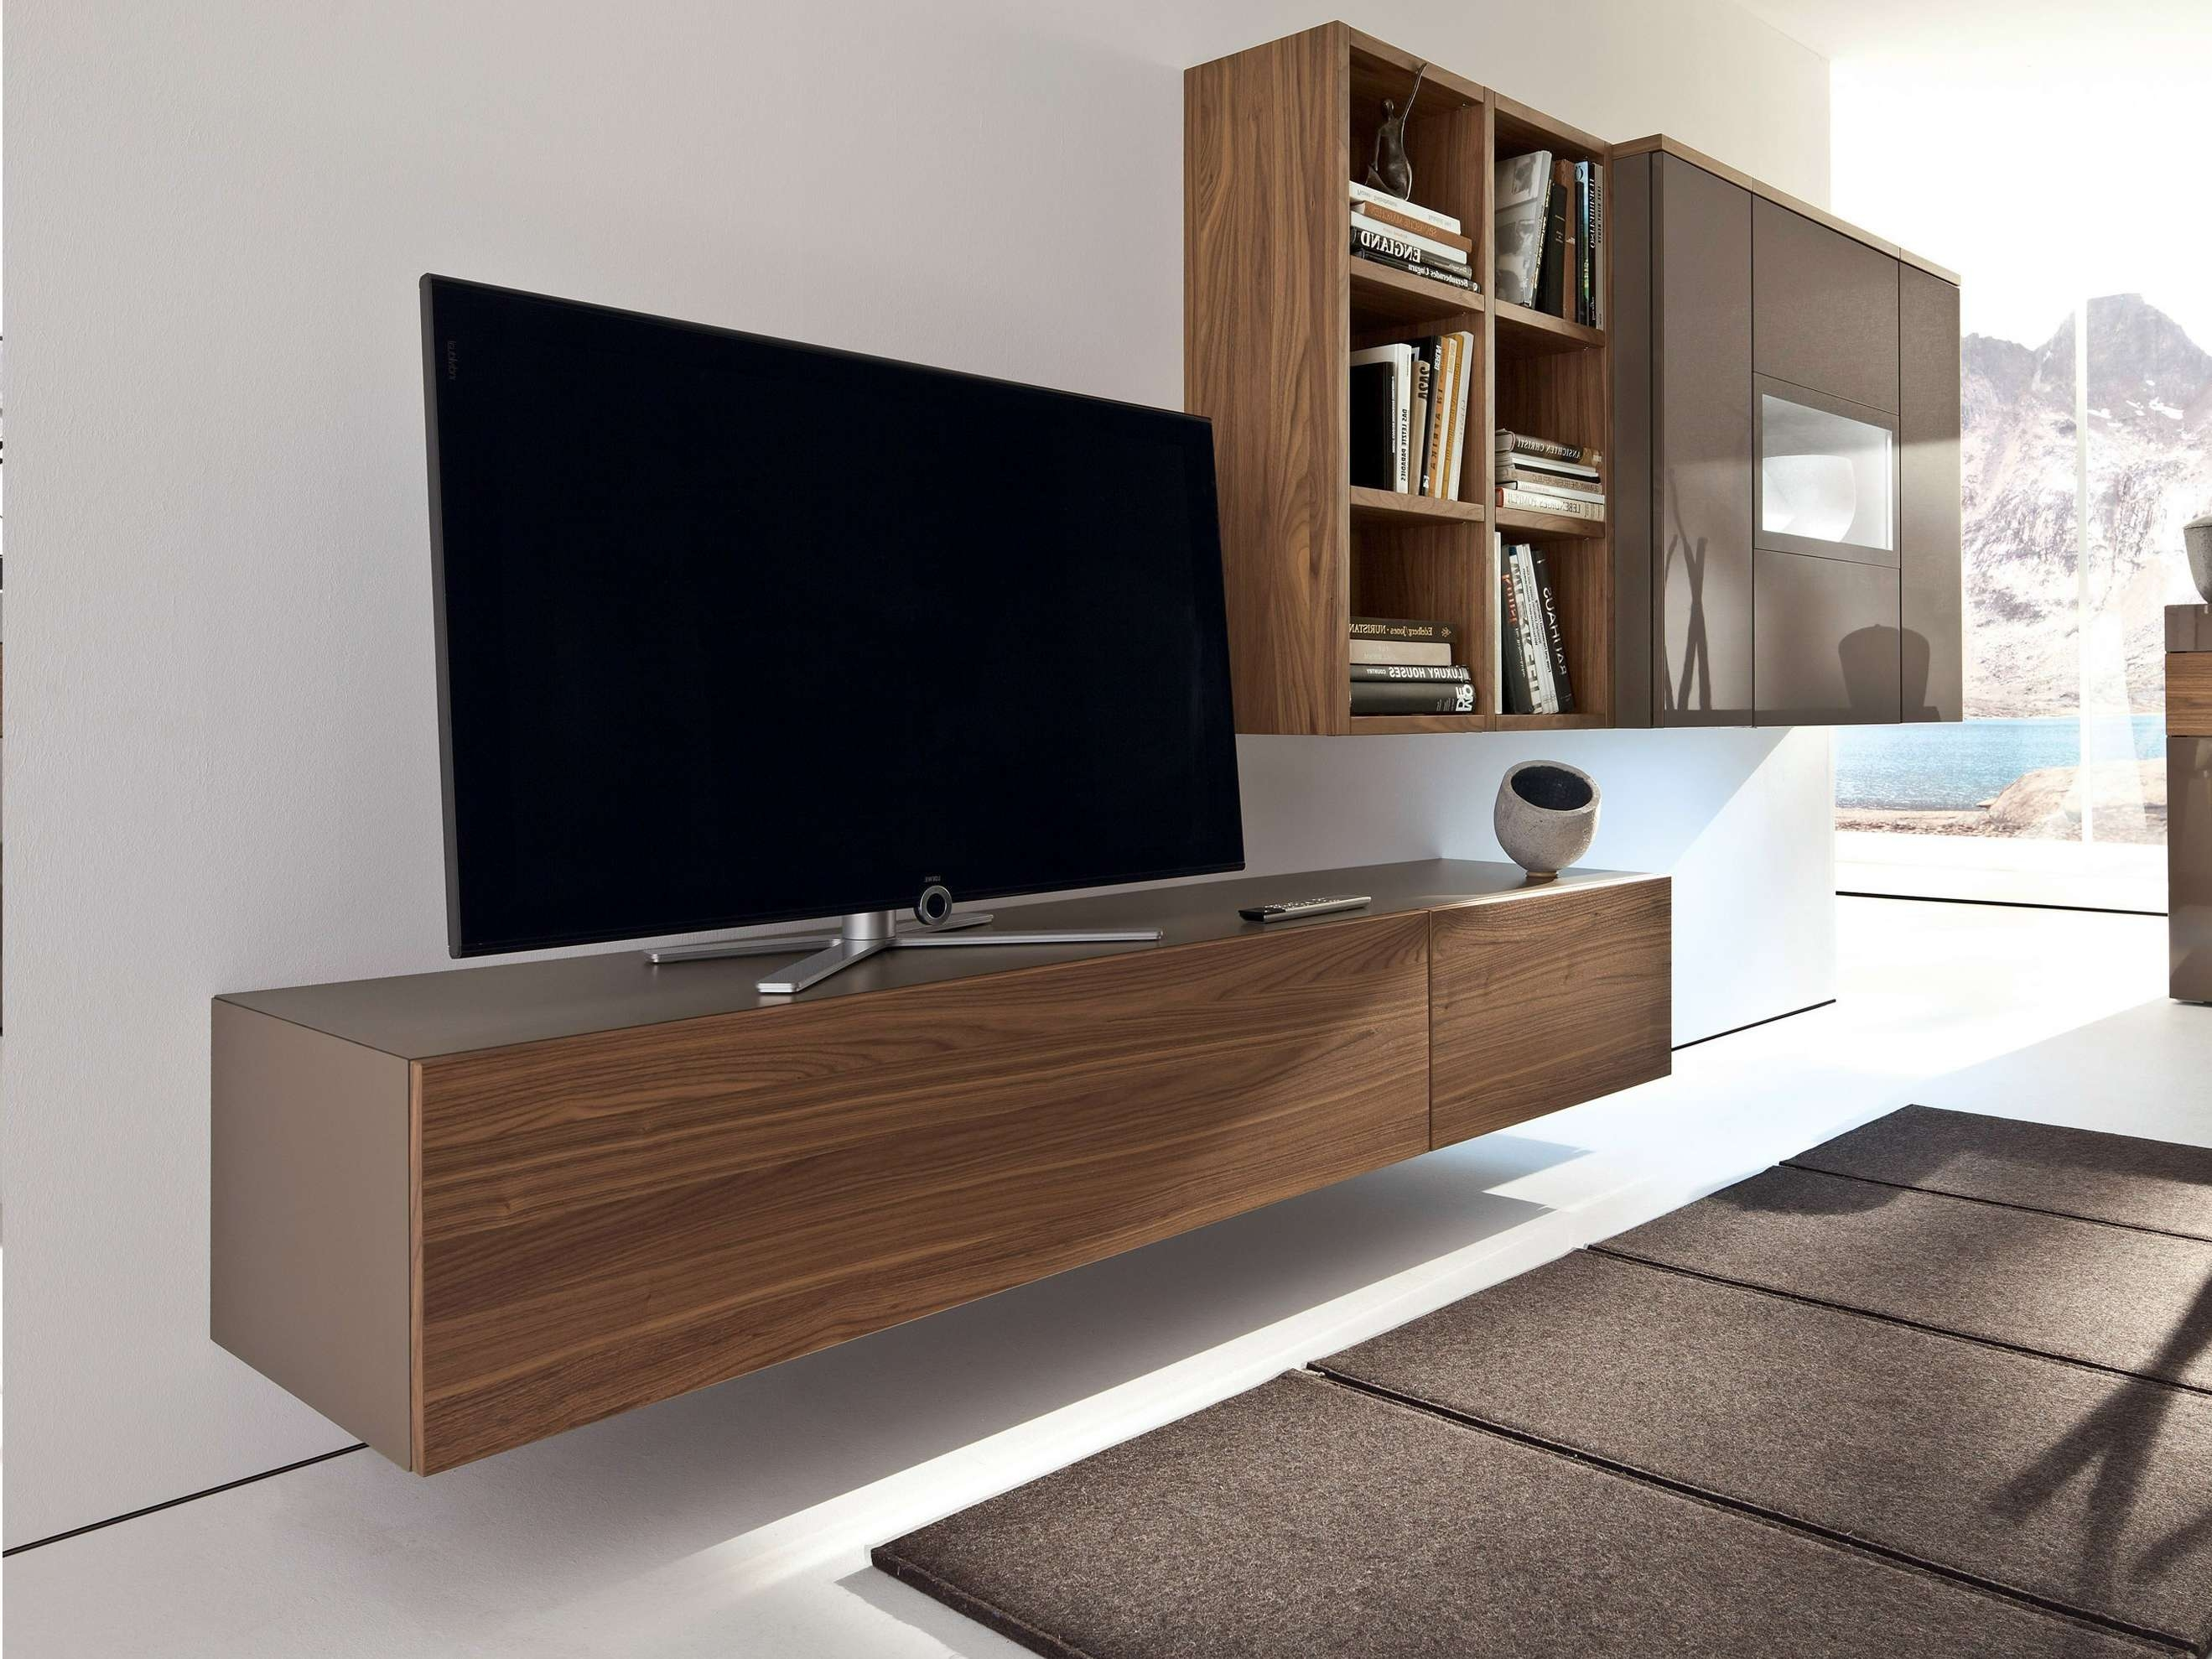 Wall Mounted Media Cabinet With Doors Brown Ebony Hardwood Within Tv Cabinets With Storage (View 20 of 20)